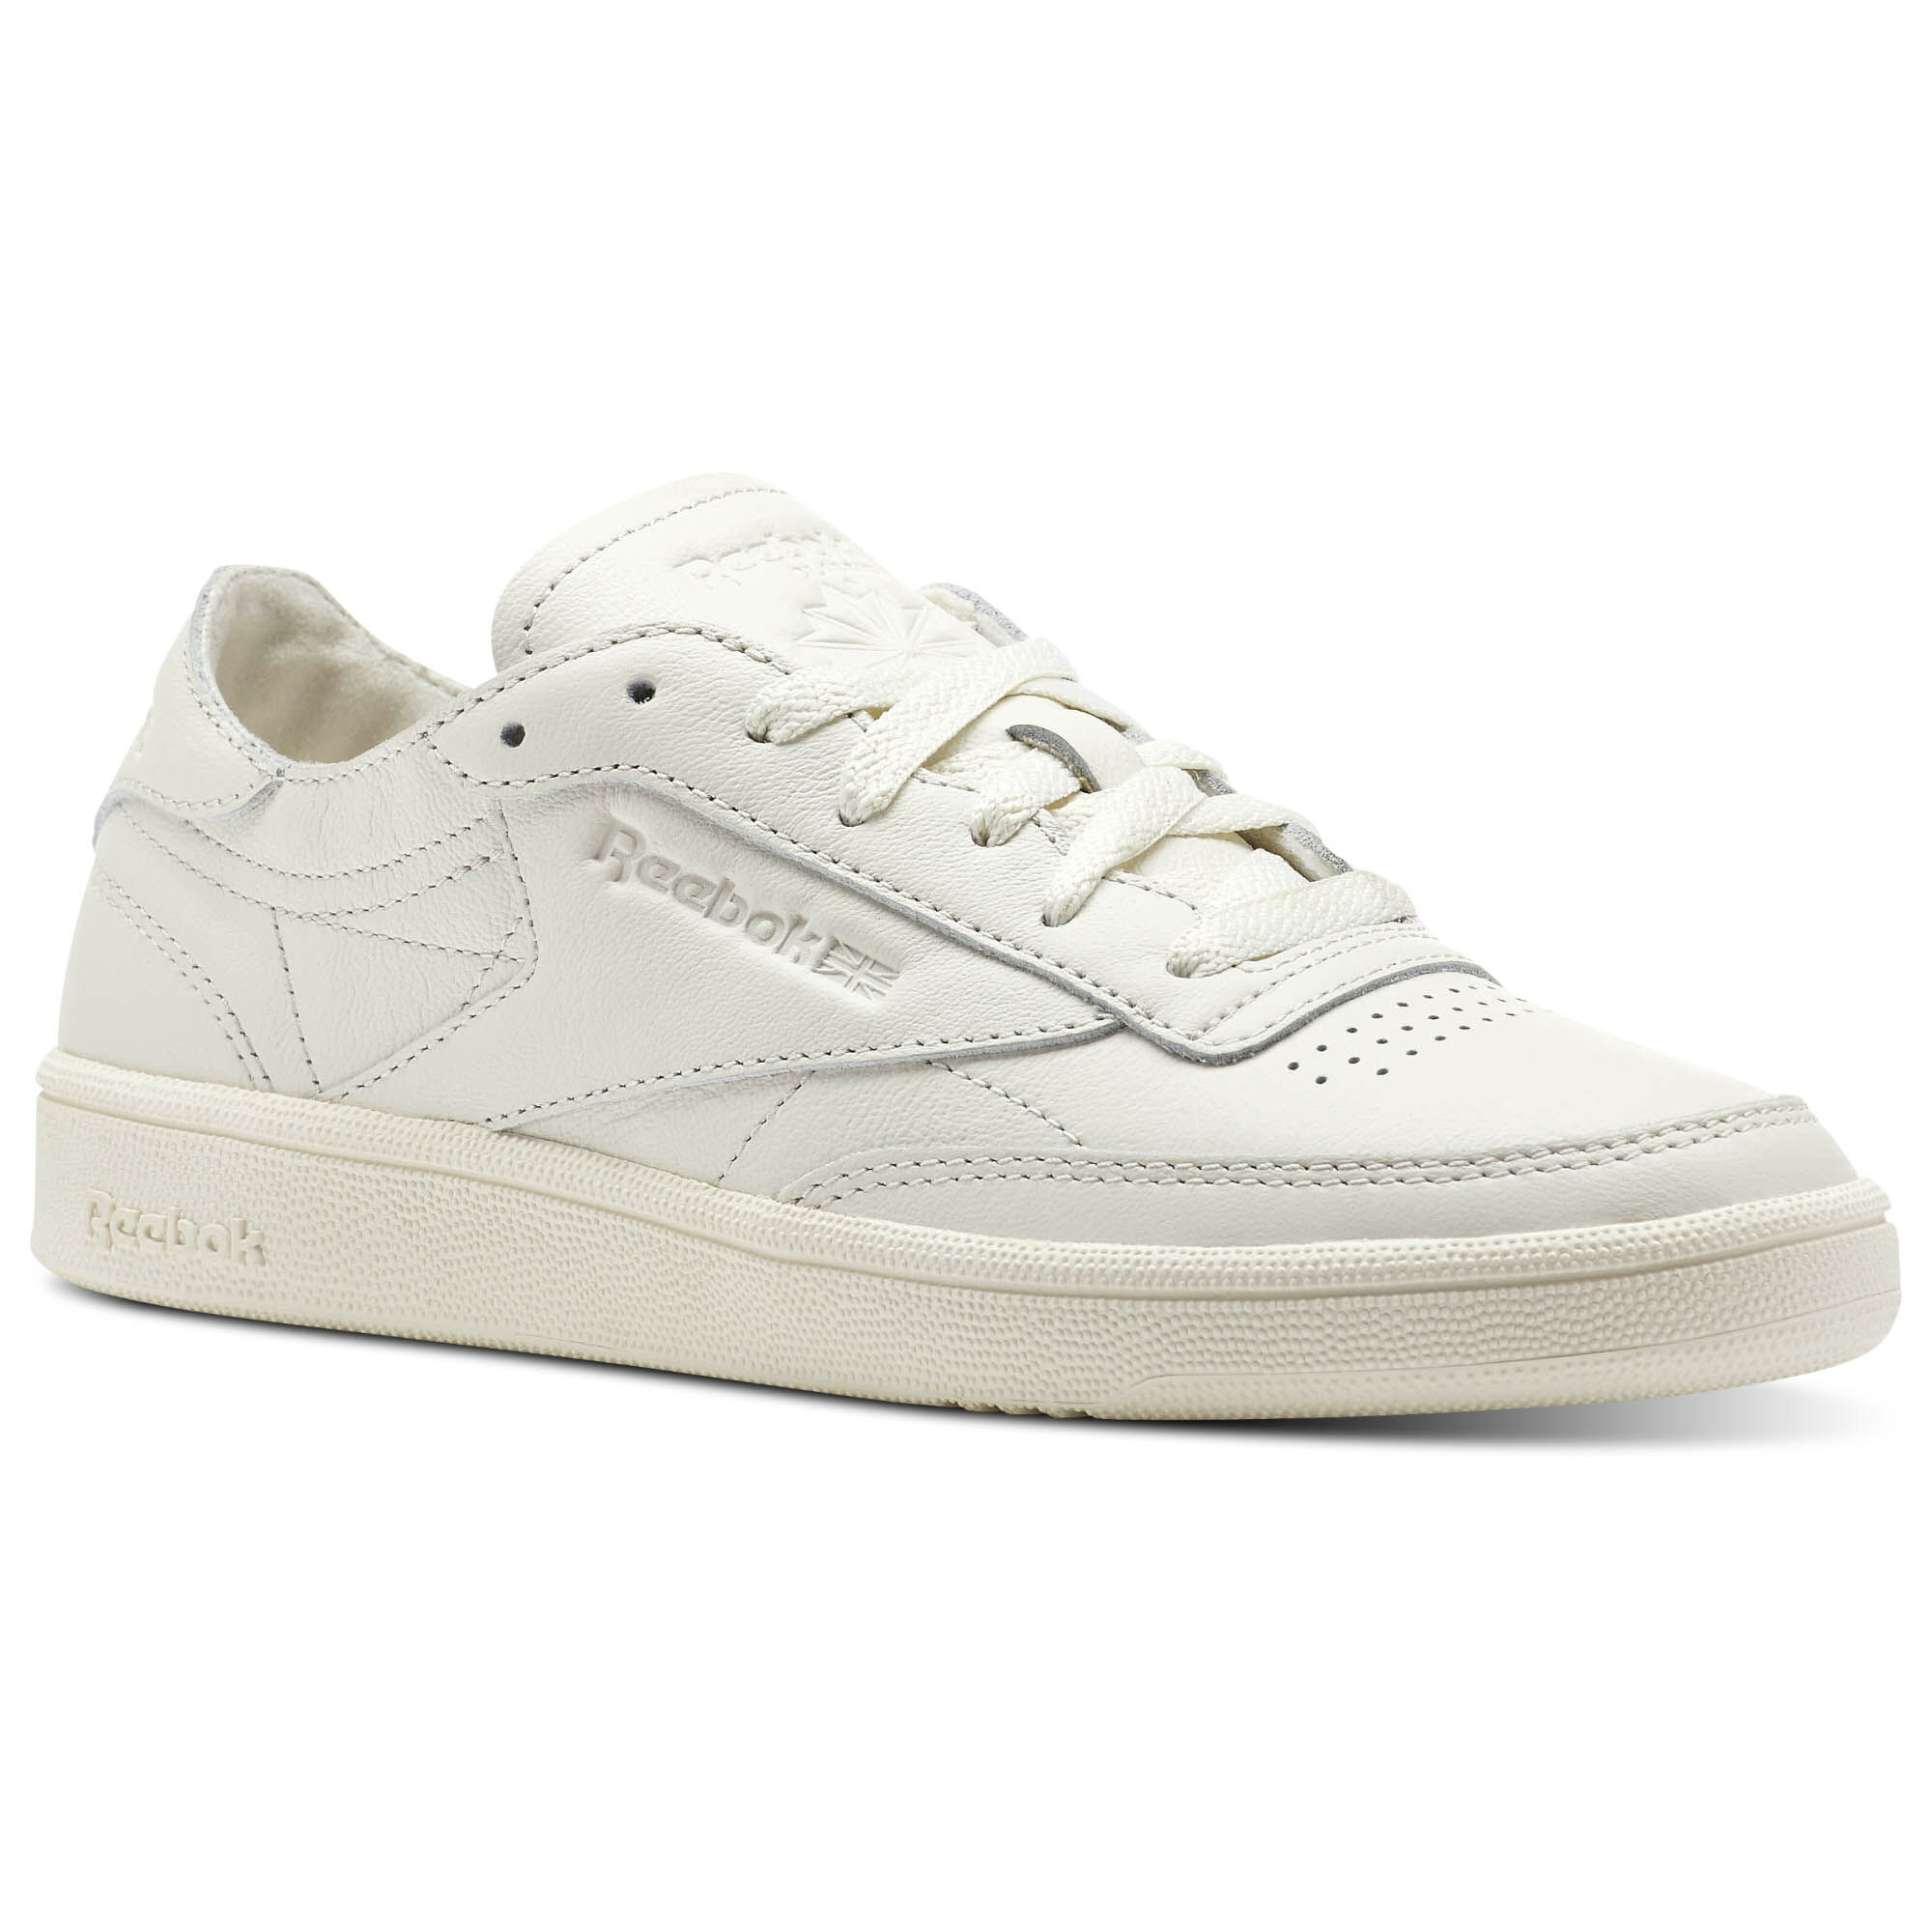 Reebok Club C 85 DCN sneakers